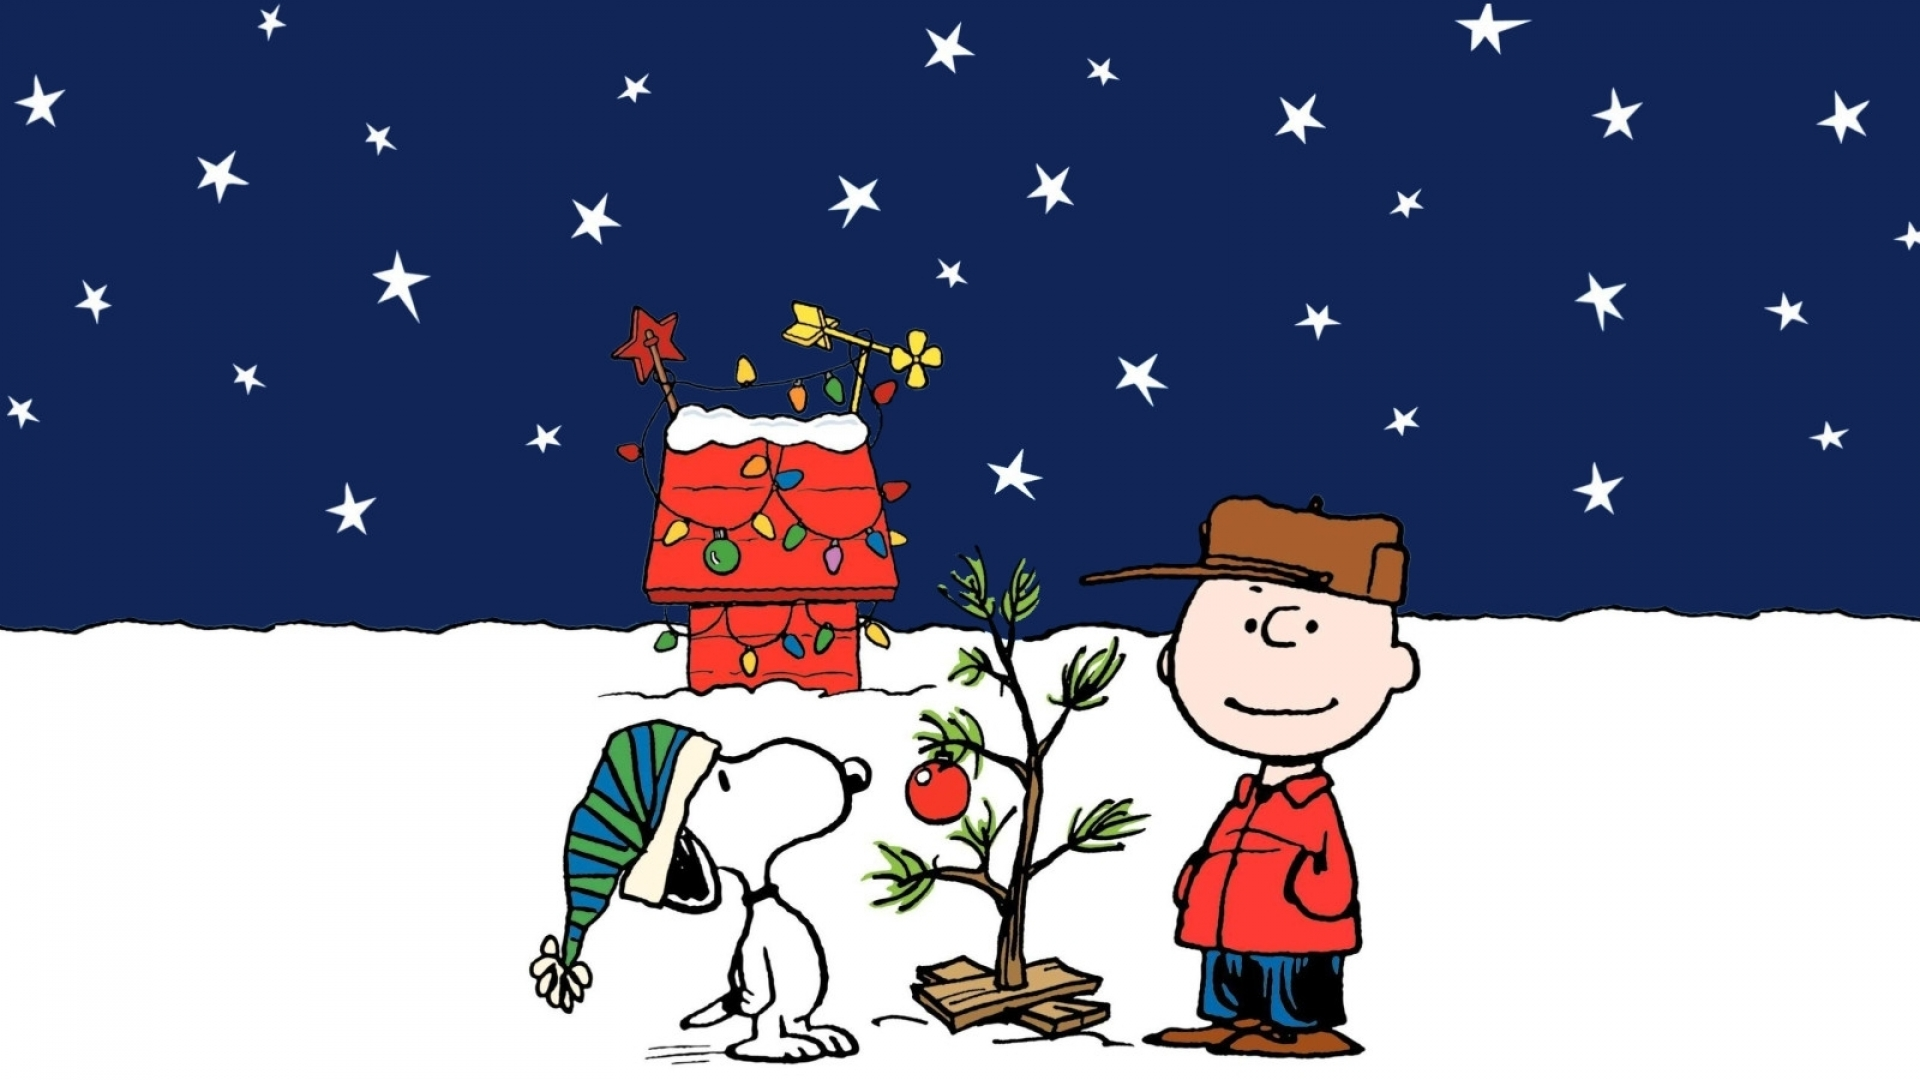 charlie brown peanuts comics snoopy christmas gg wallpaper 1920x1080 160960 wallpaperup